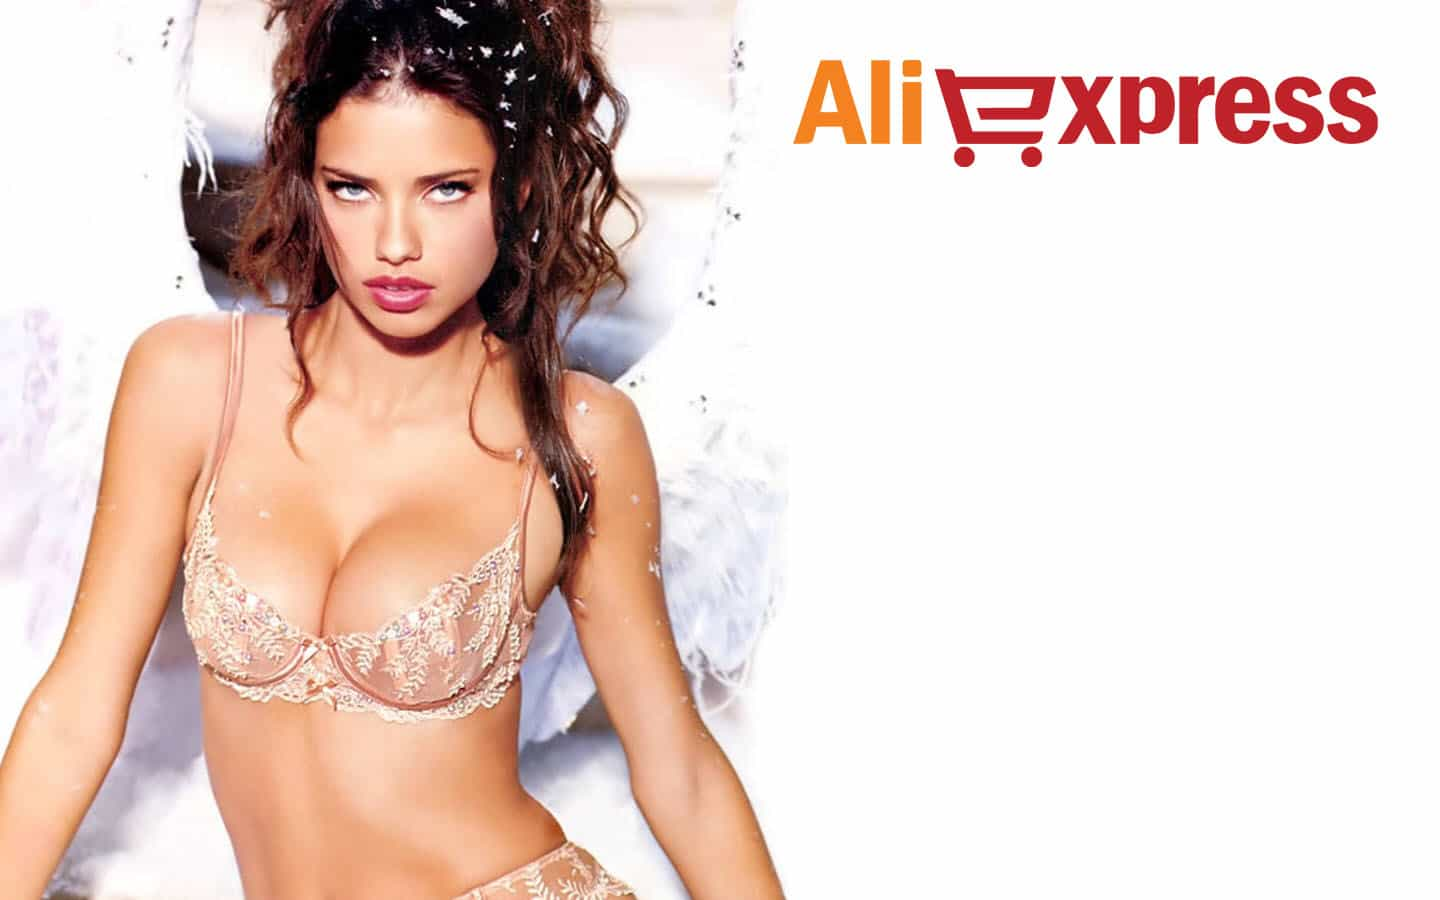 Downloaded from www.sexydesktop.co.uk